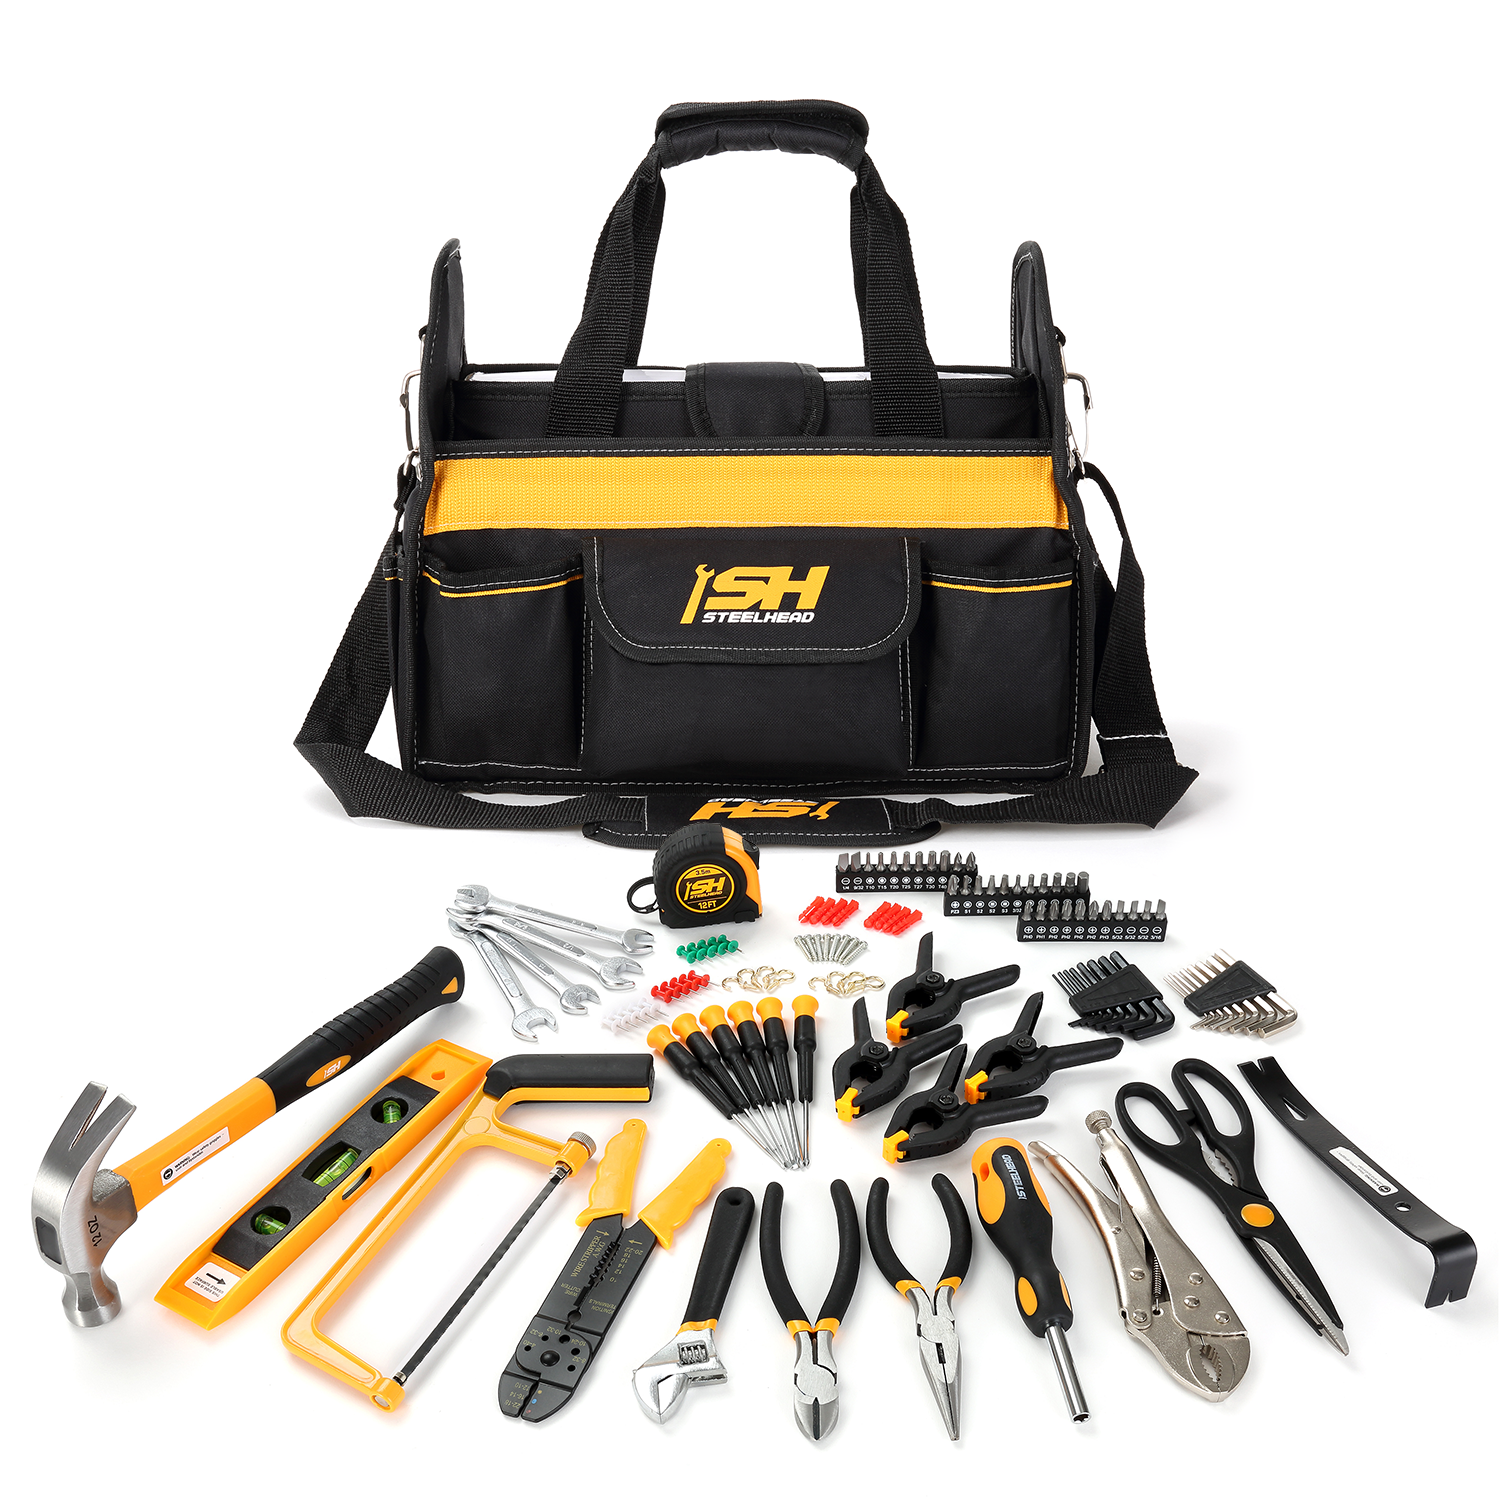 Home Tool Set (117 Piece) - Hand Tool Sets - MOTORHEAD Tools